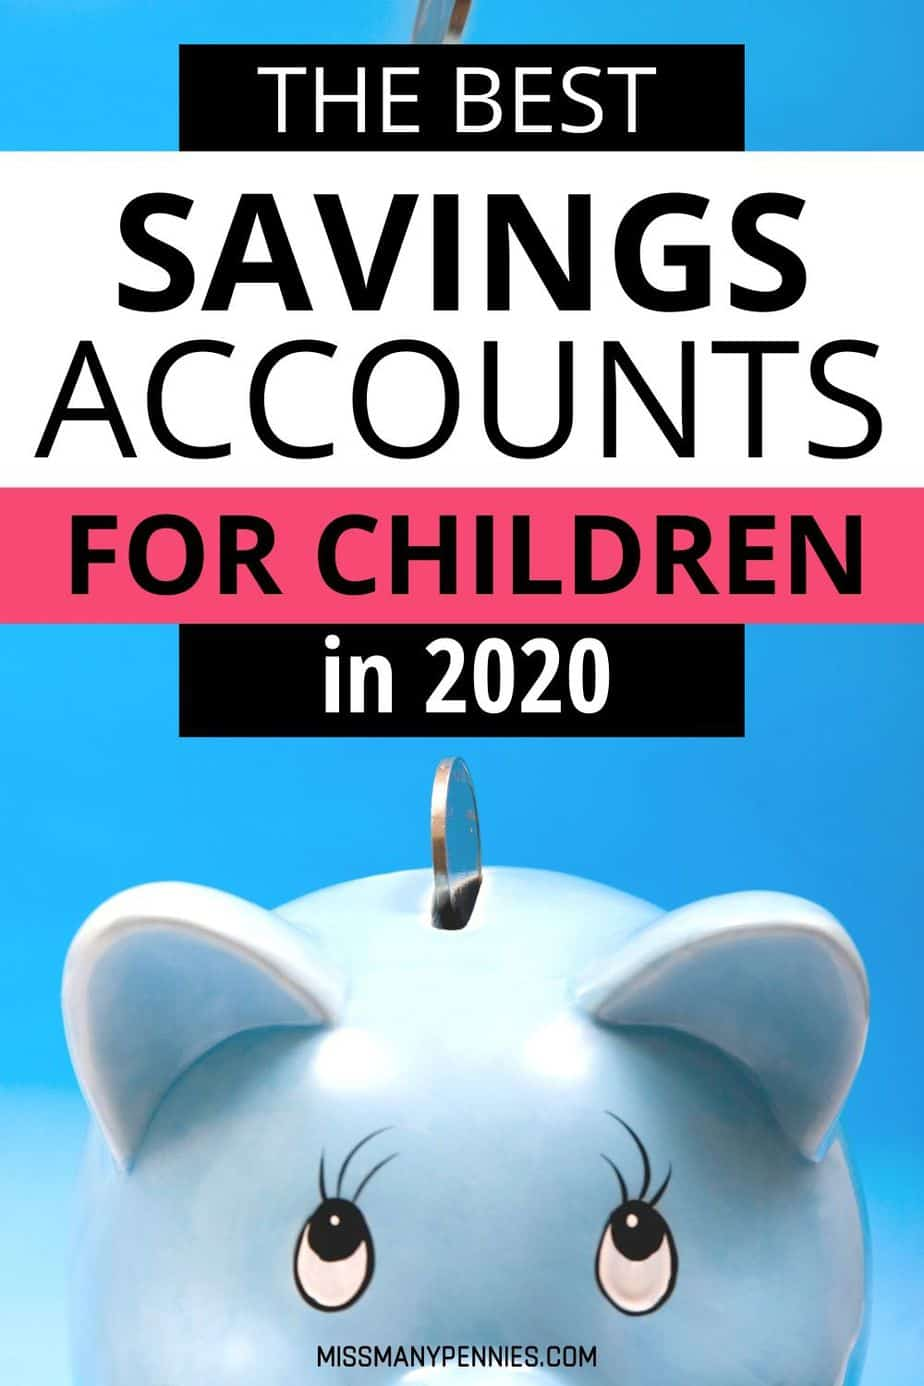 The best savings account for children in 2020